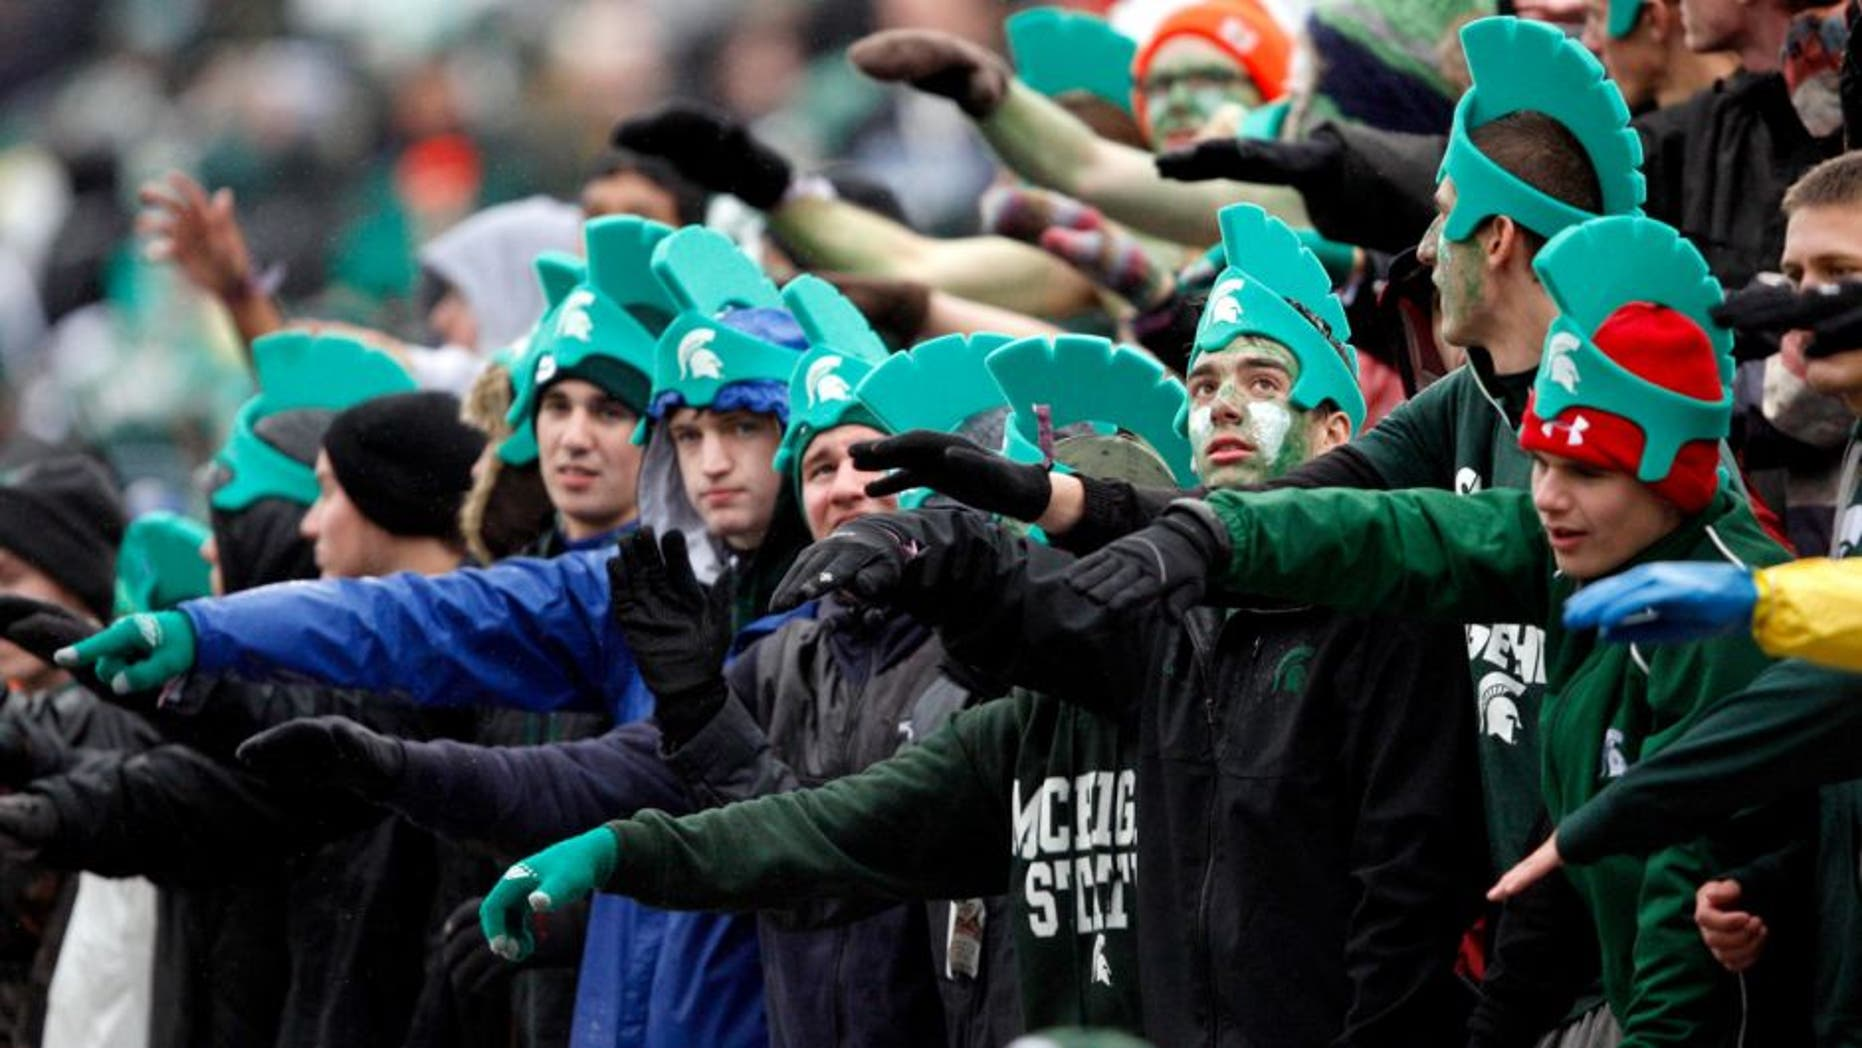 Nov 2, 2013; East Lansing, MI, USA; Michigan State Spartans fans cheer during the first quarter against the Michigan Wolverines at Spartan Stadium. Mandatory Credit: Raj Mehta-USA TODAY Sports